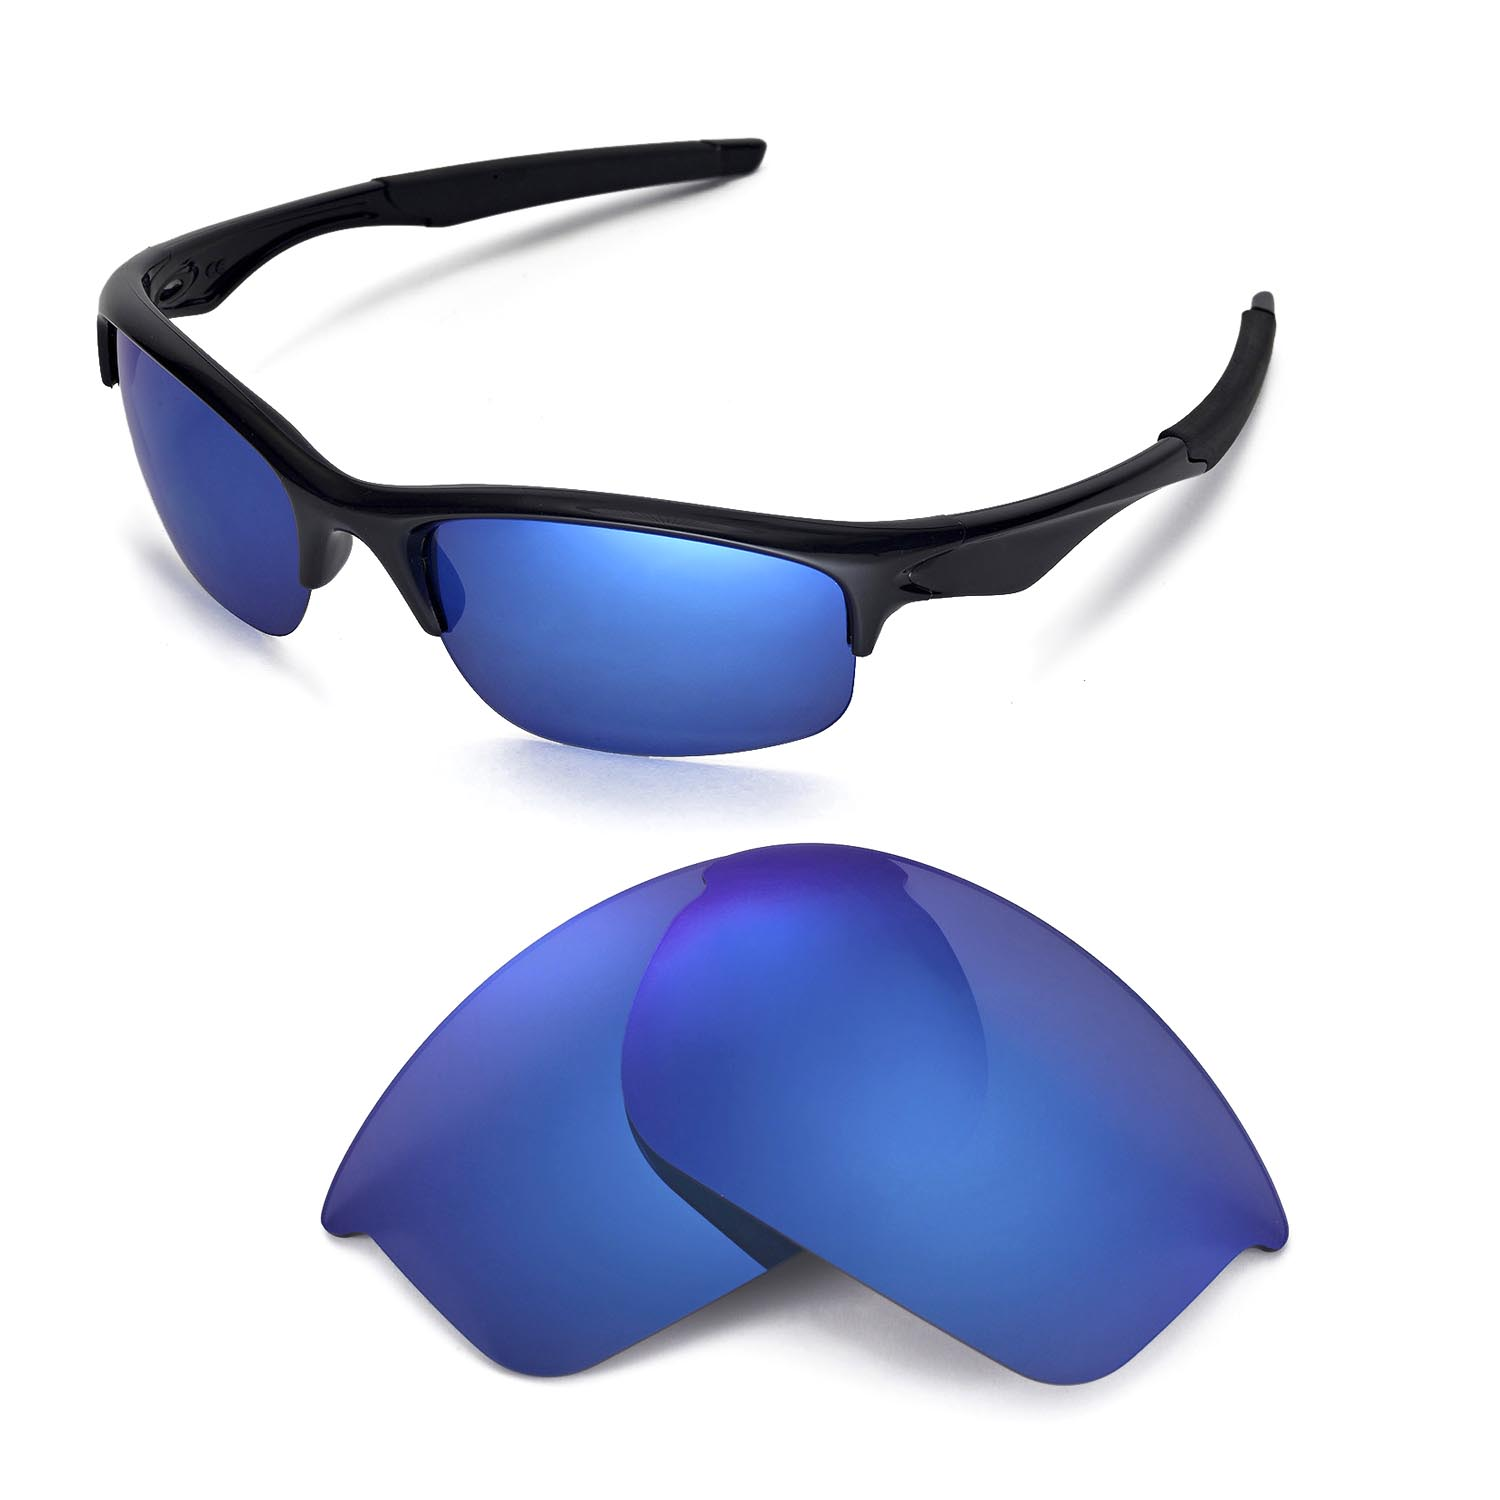 a281fea00c5 Details about WL Polarized Ice Blue Replacement Lenses For Oakley Bottle  Rocket Sunglasses